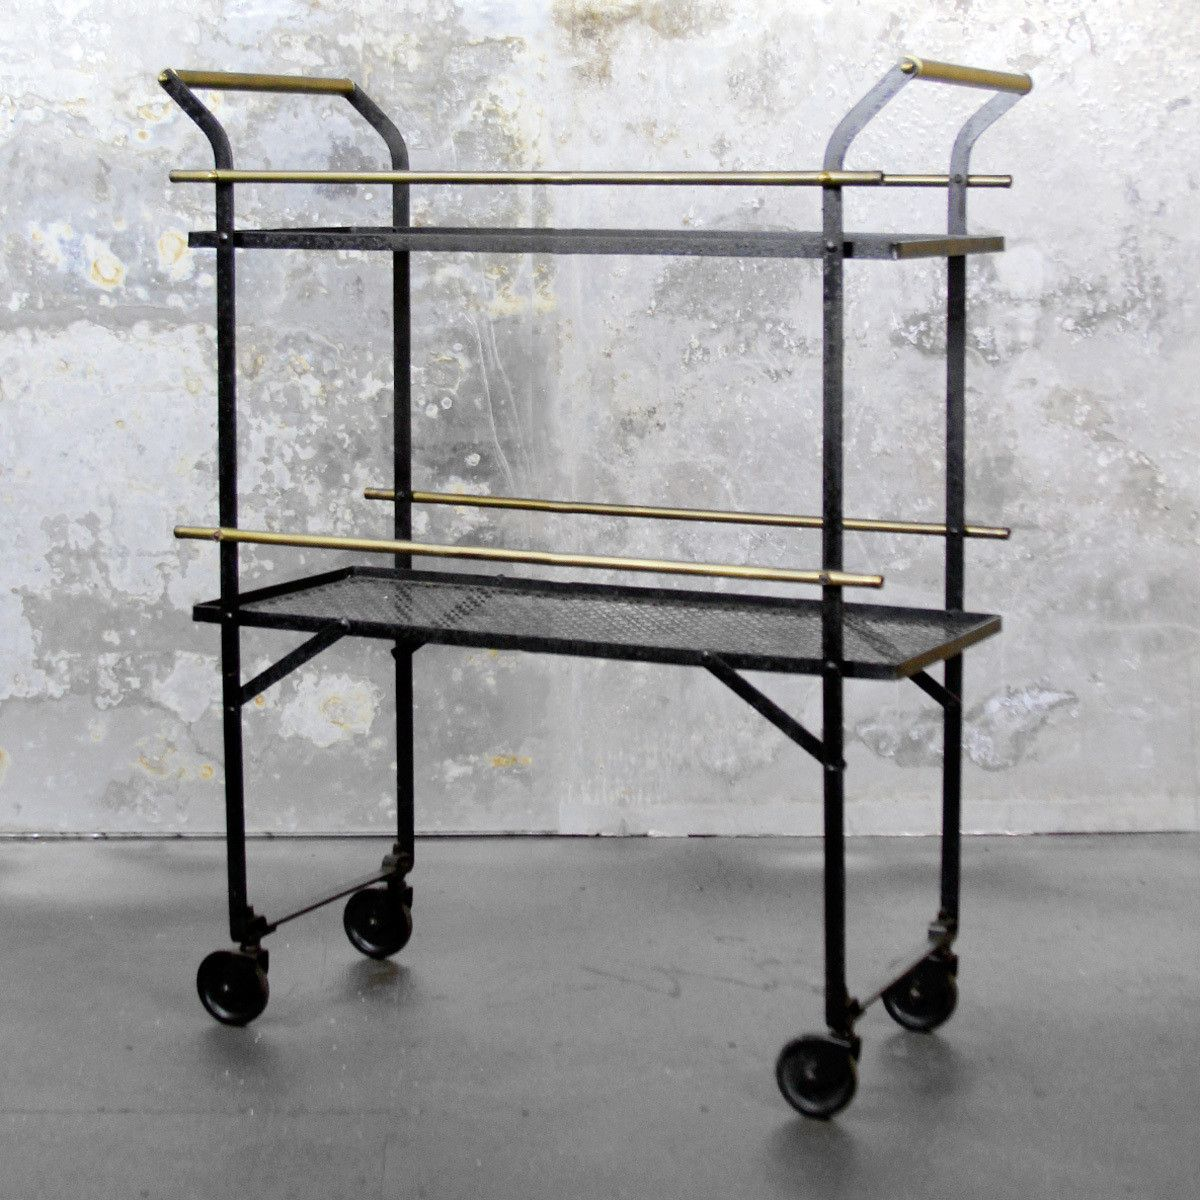 Mid-Century Bar Cart by Lackluster Co. - for the man cave